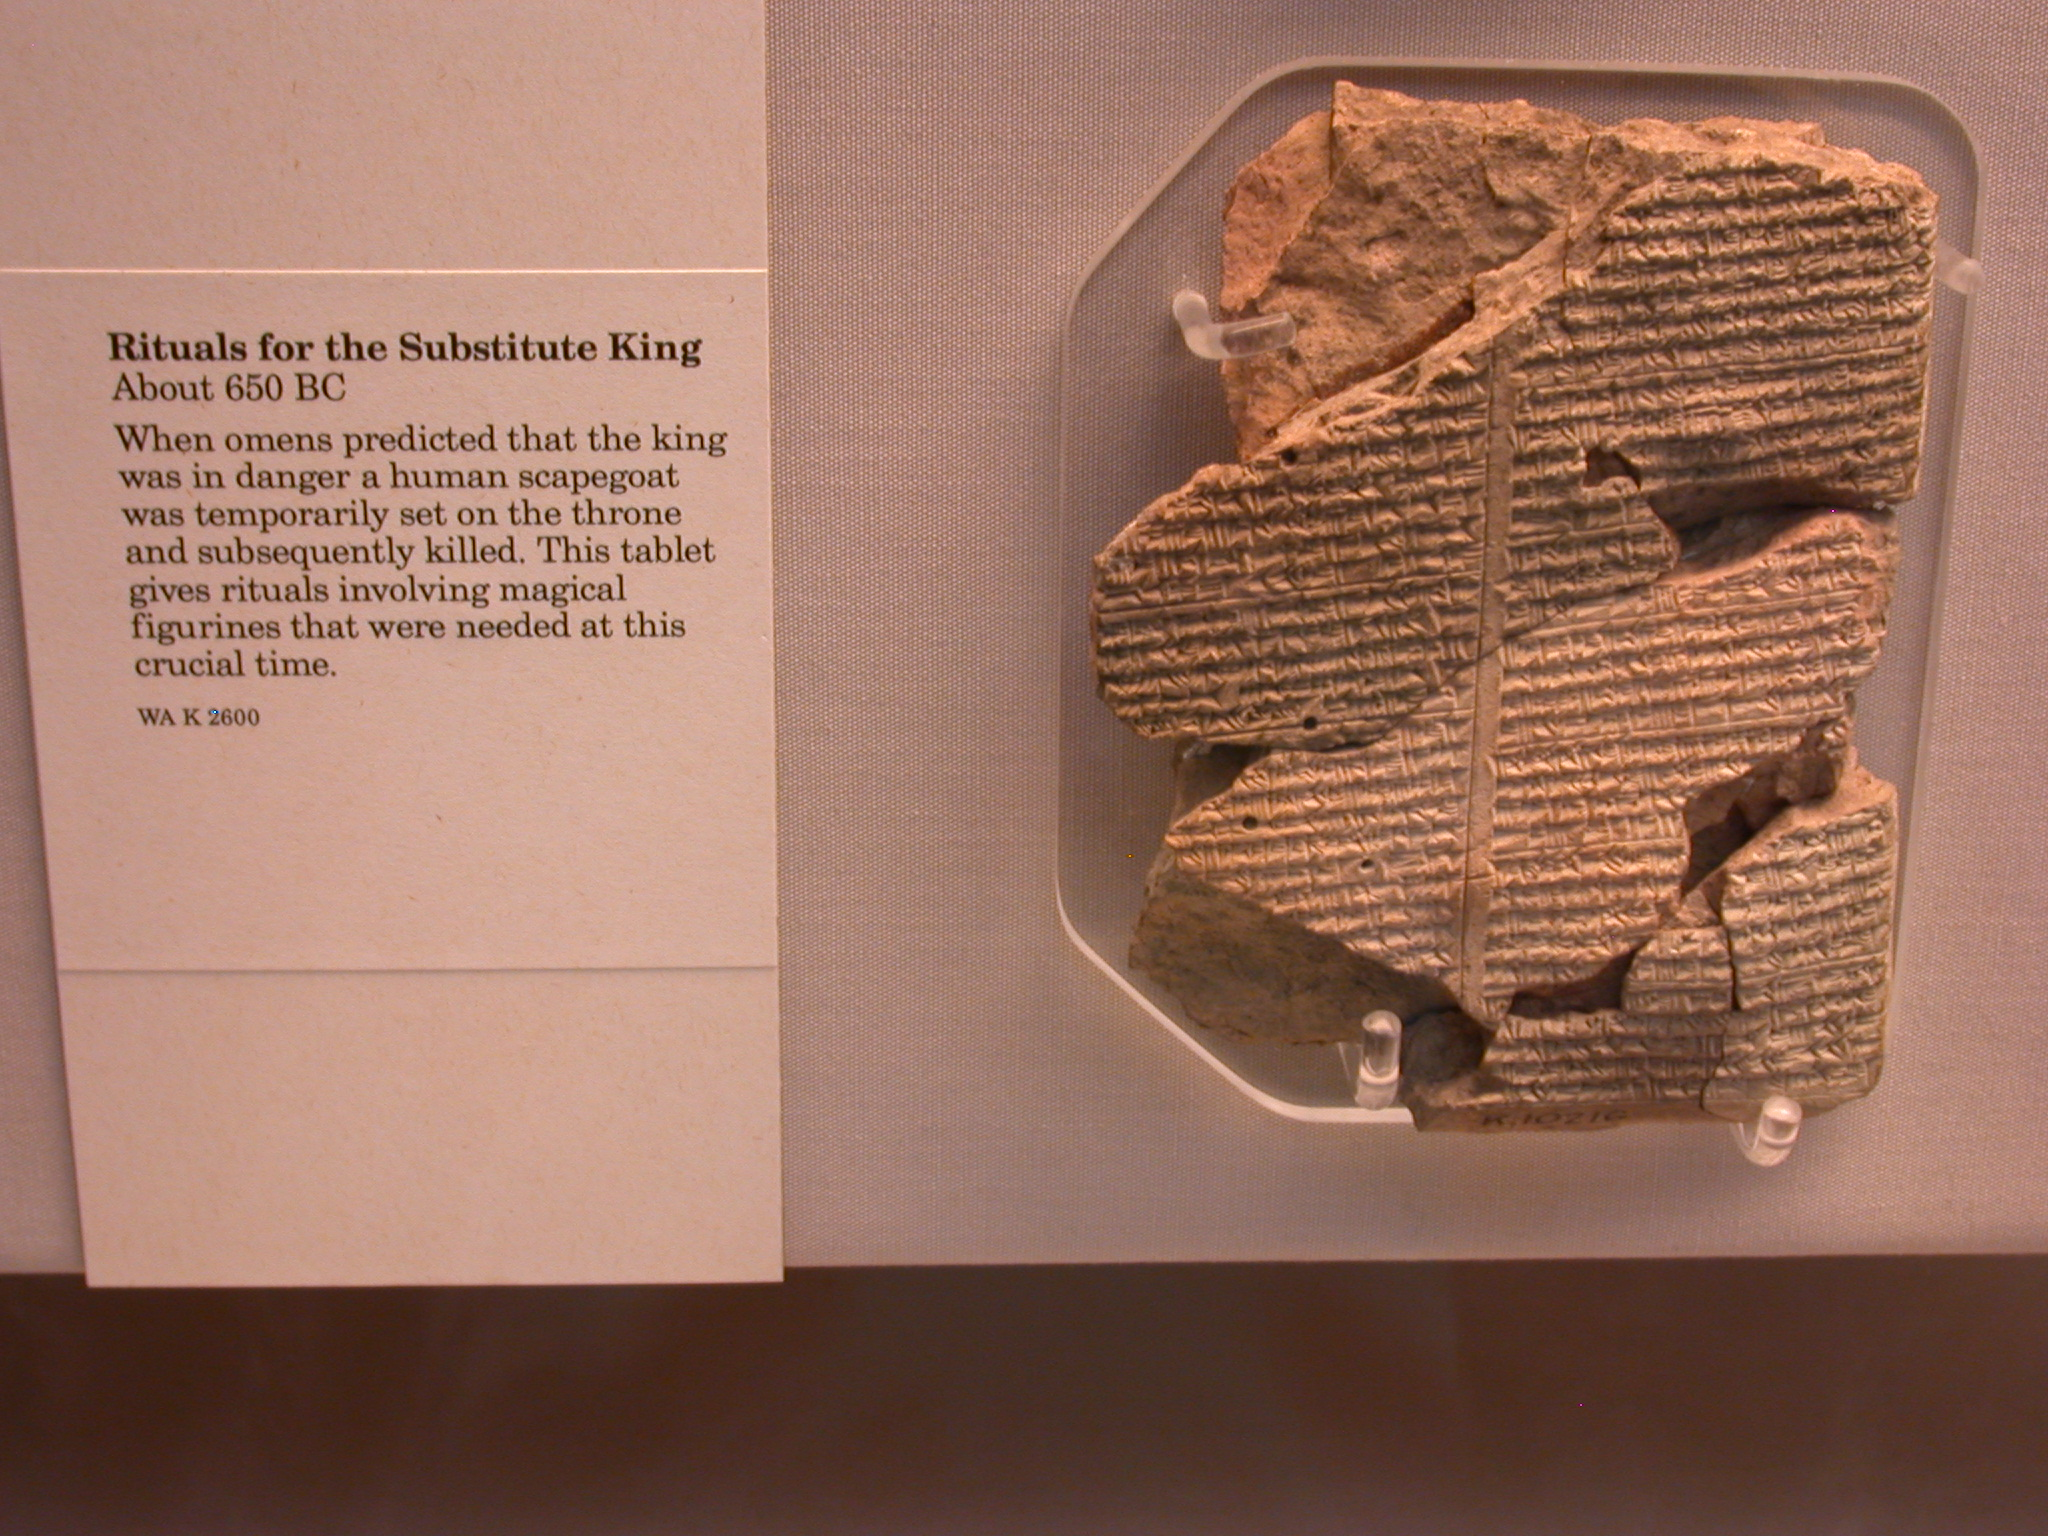 Rituals for the Substitute King, Cuneiform Tablet, About 650 BCE, Asssyria, in British Museum, London, England